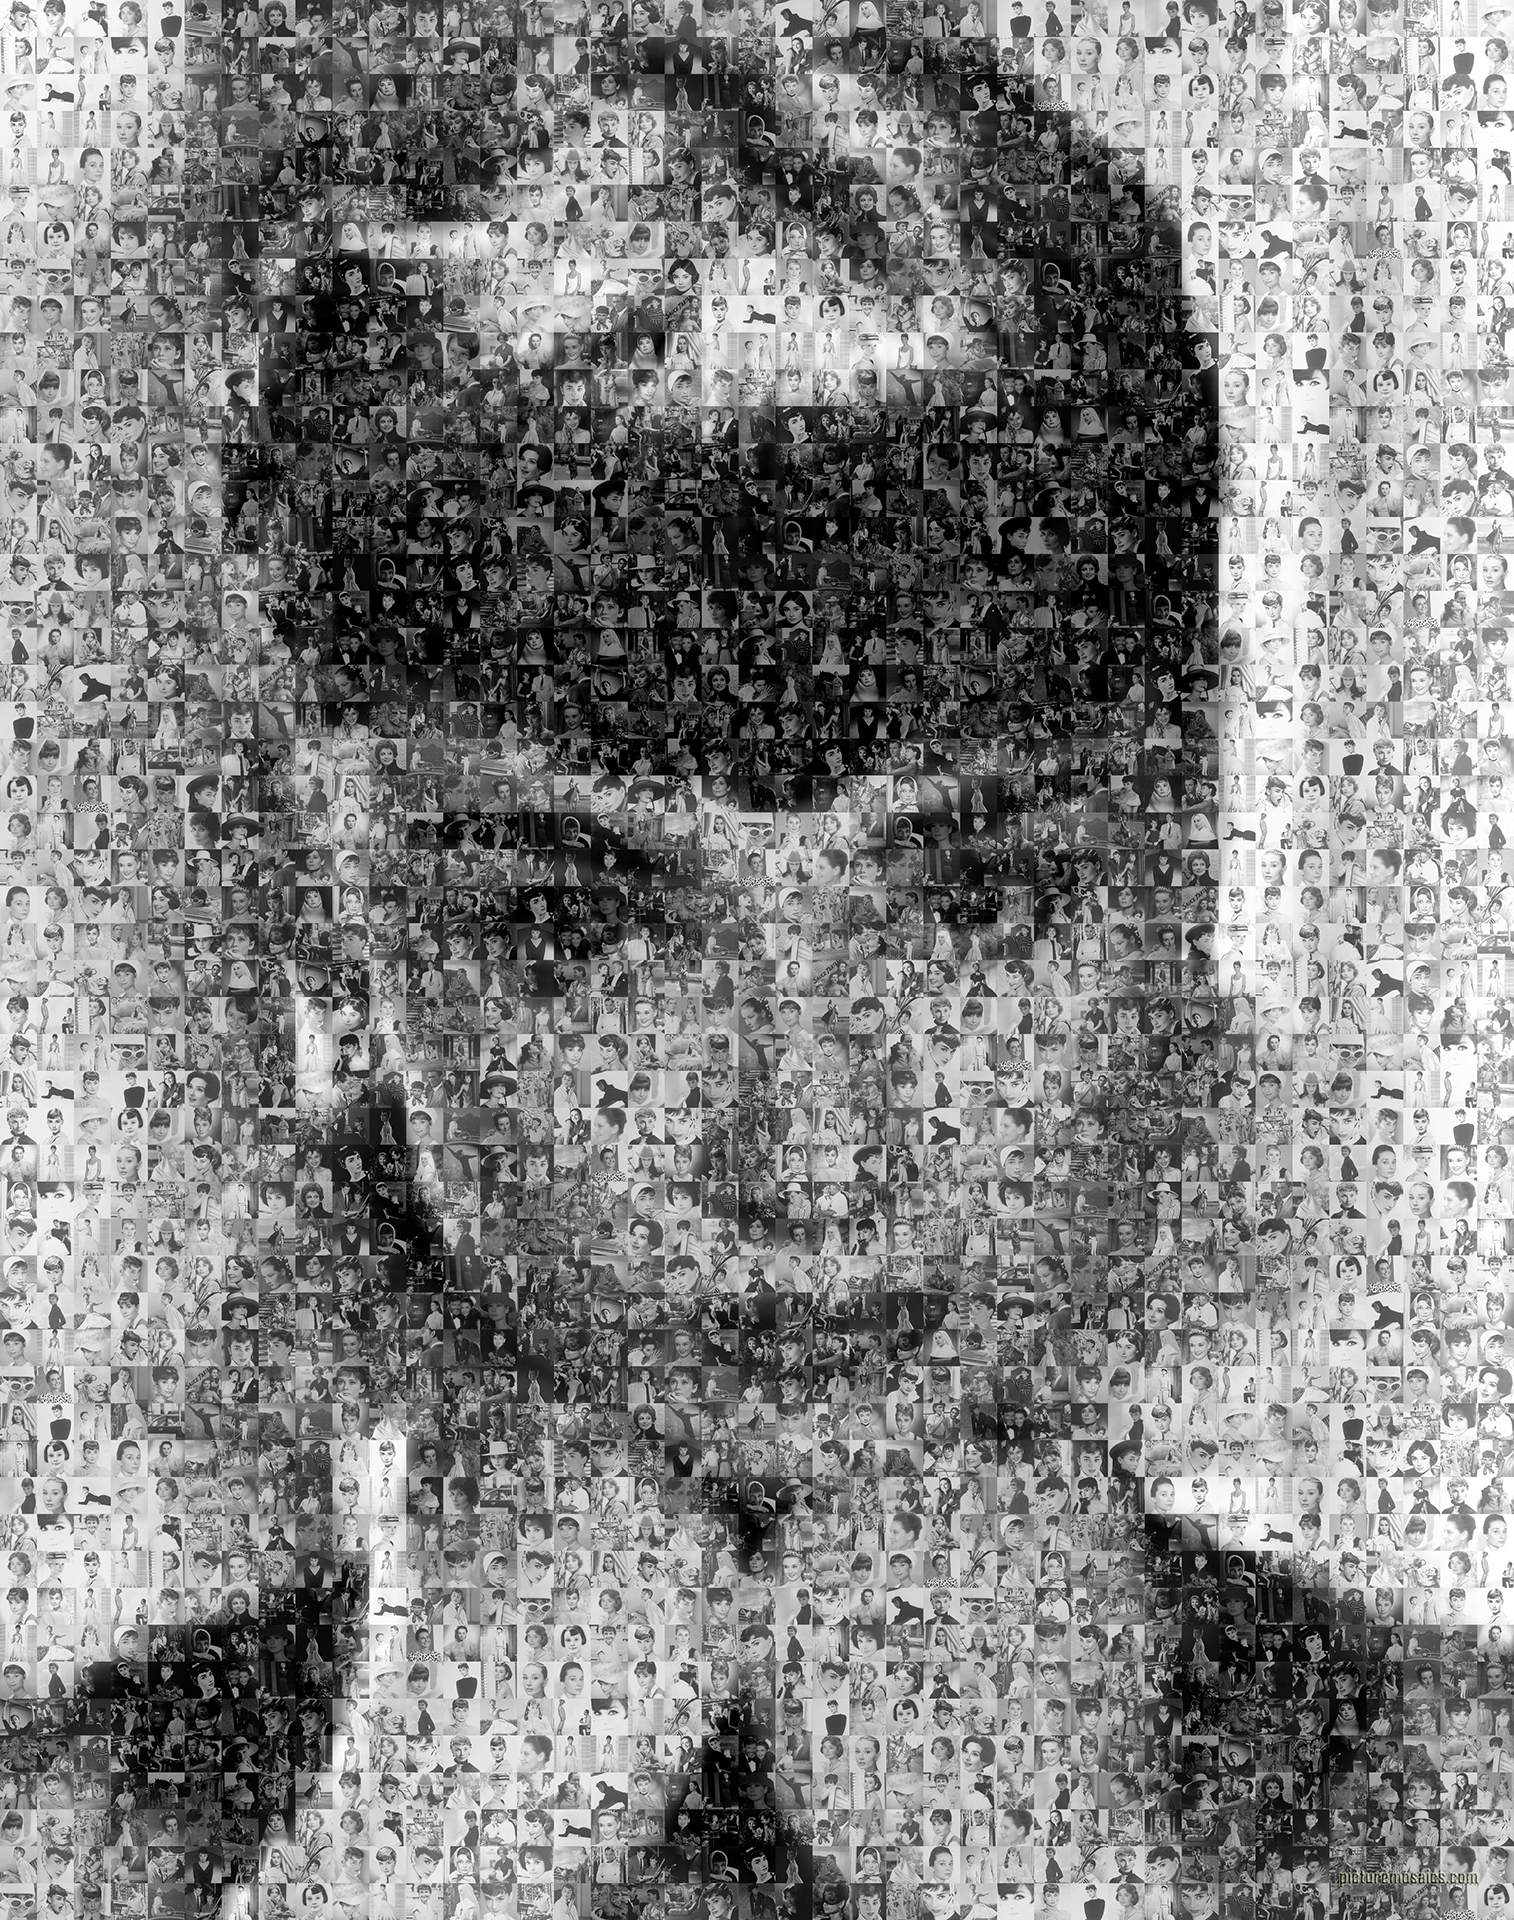 photo mosaic created using 186 images from Audrey's films and photos